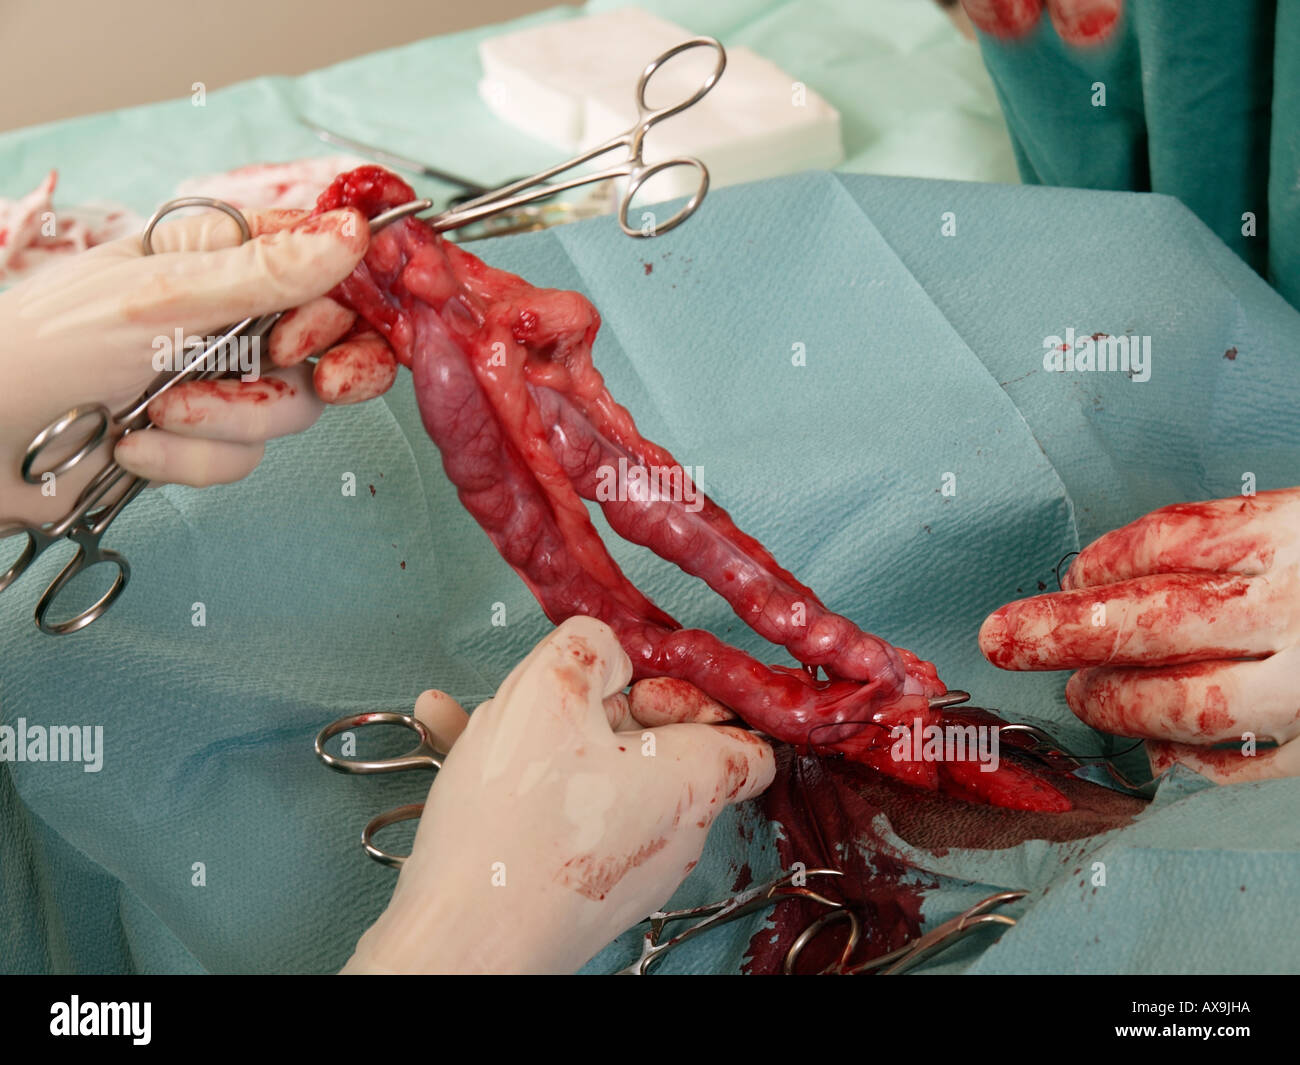 Vererinary surgeons removing a badly inflamed uterus of a doberman pinscher dog - Stock Image